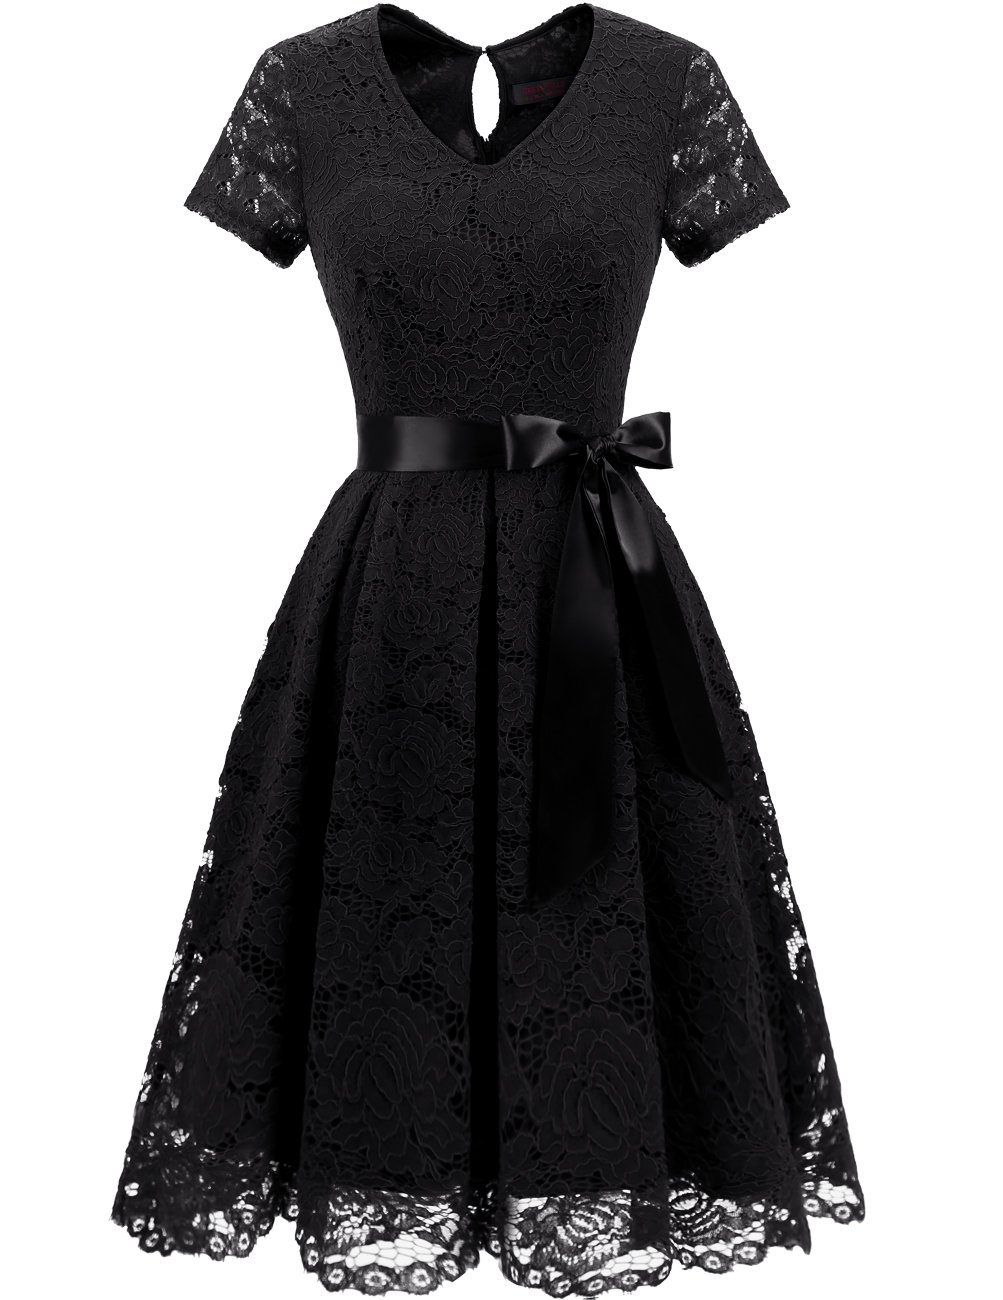 DRESSTELLS Women's Elegant Bridesmaid Dress Floral Lace Dresses with Short Sleeves Black 3XL